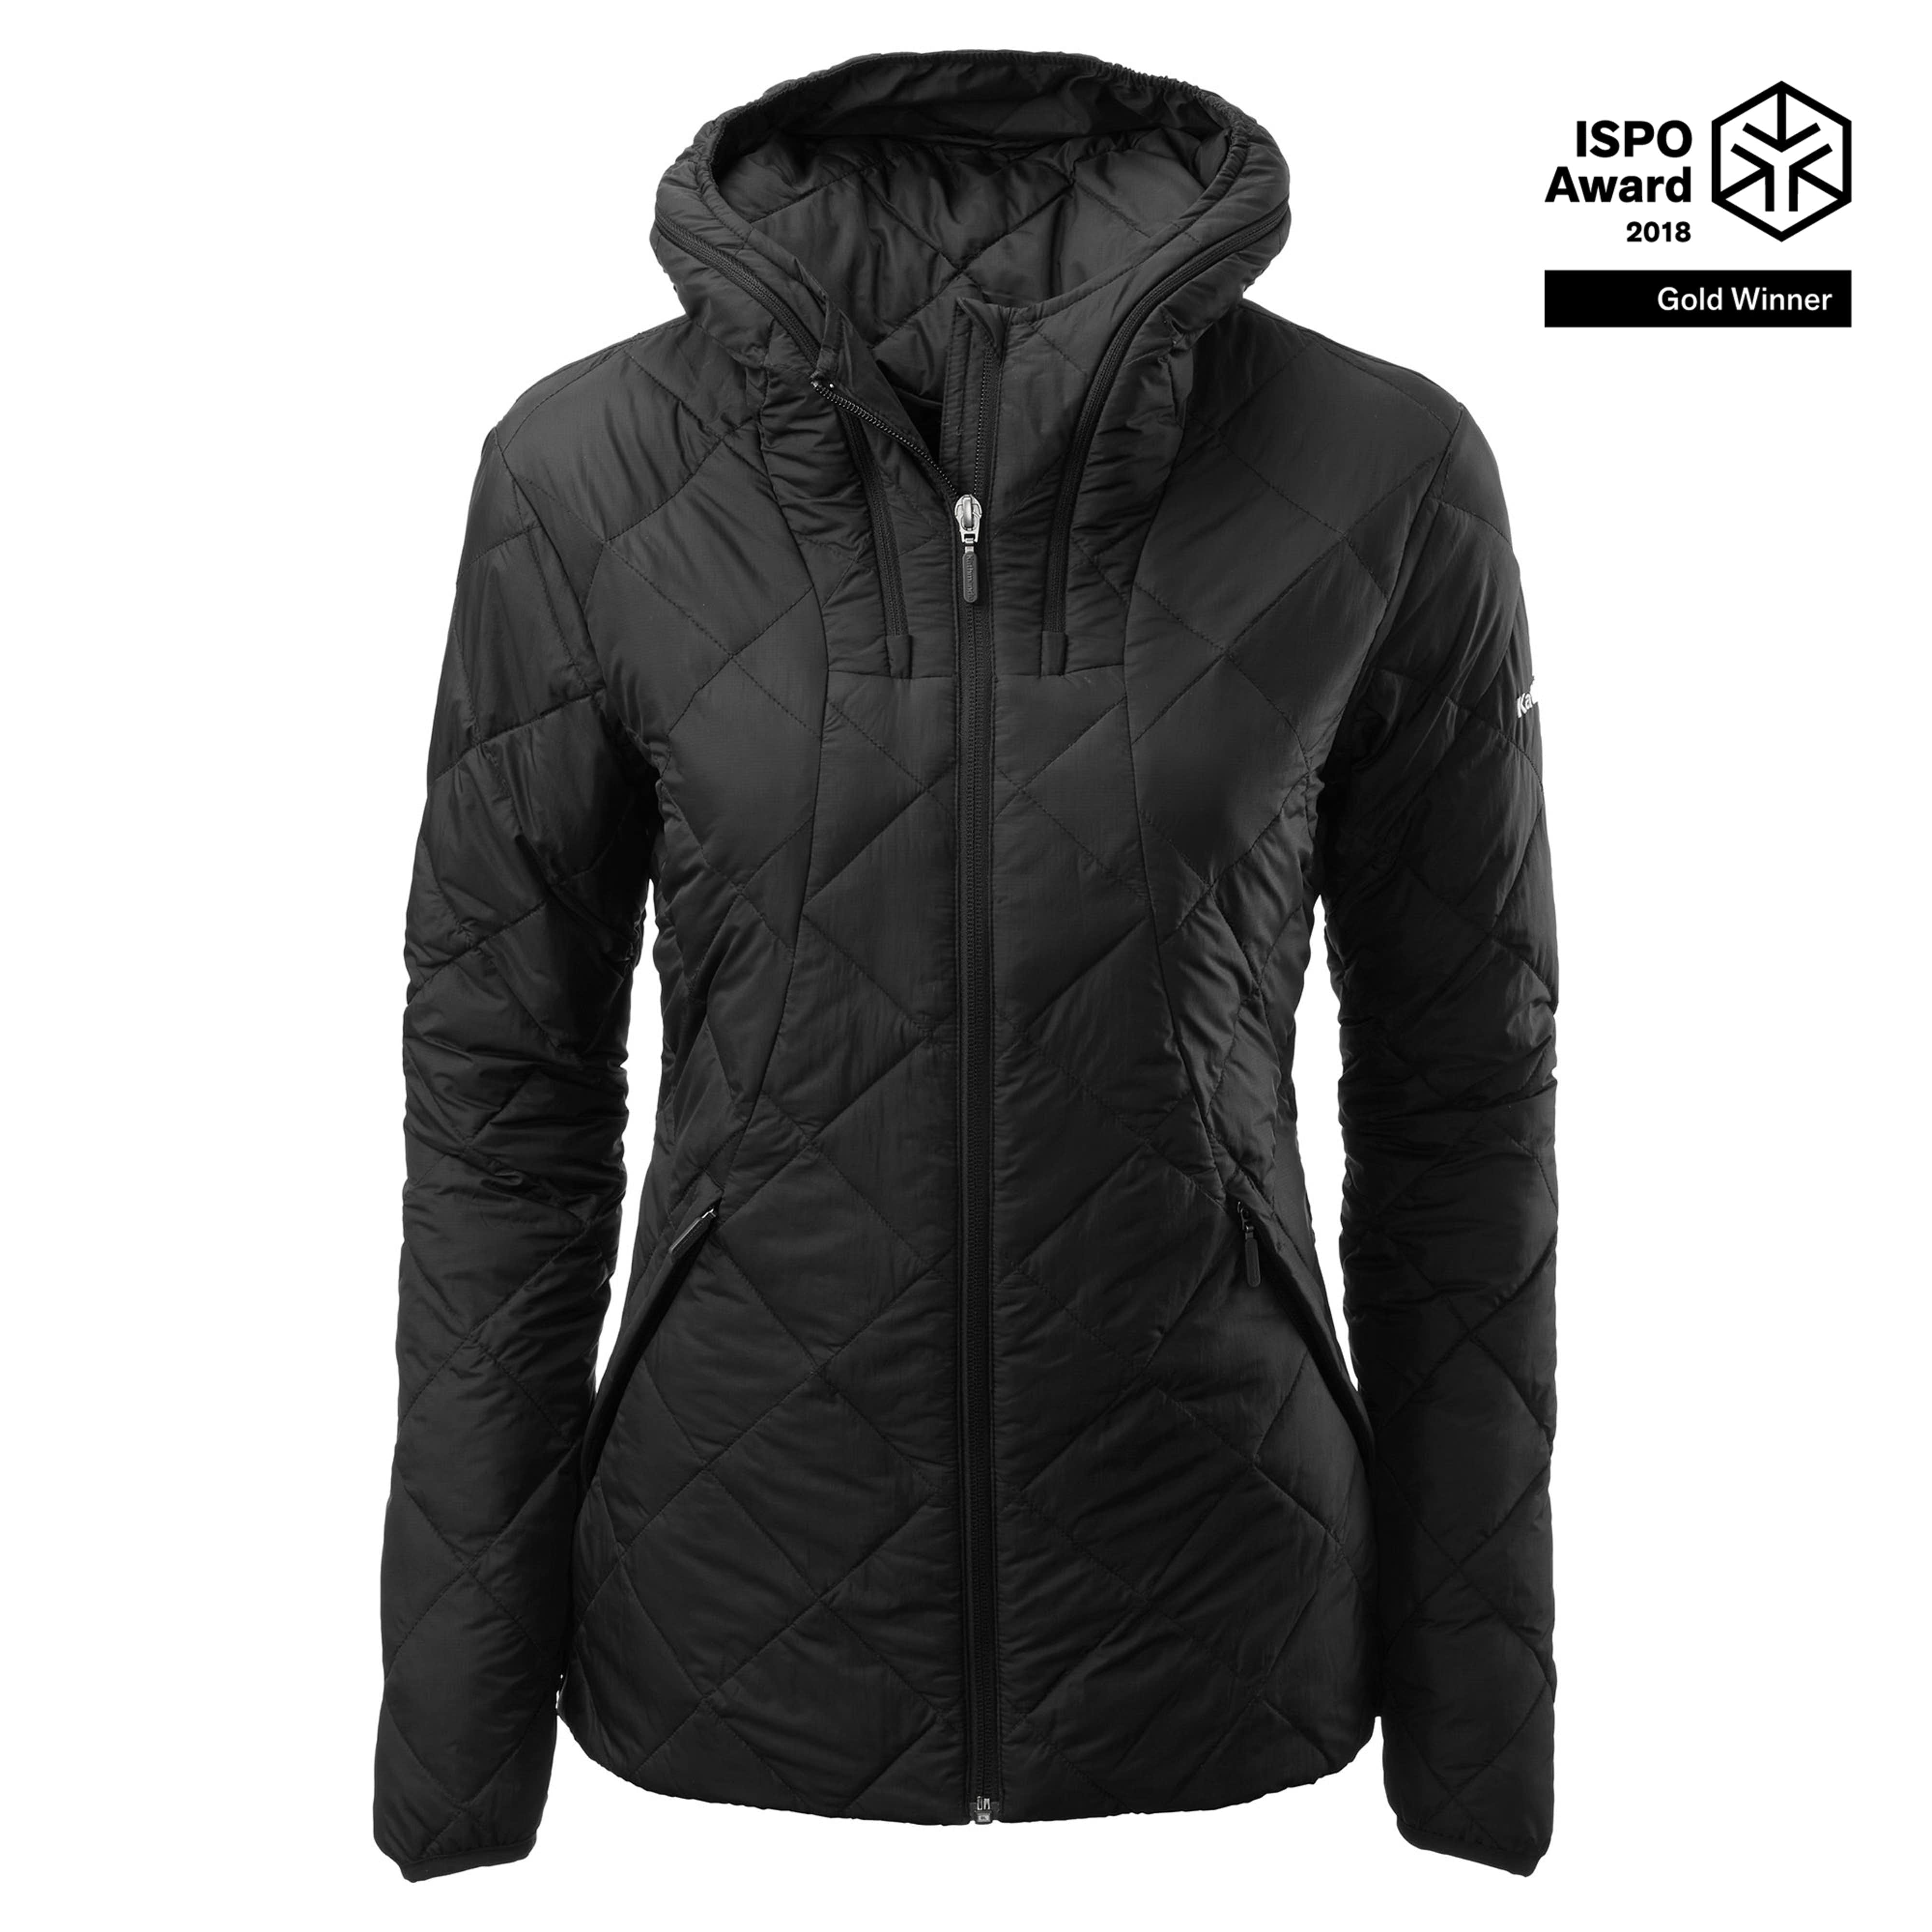 c425790f09845 Women's Winter Jackets, Coats & Vests | Women's Down Puffer Jackets